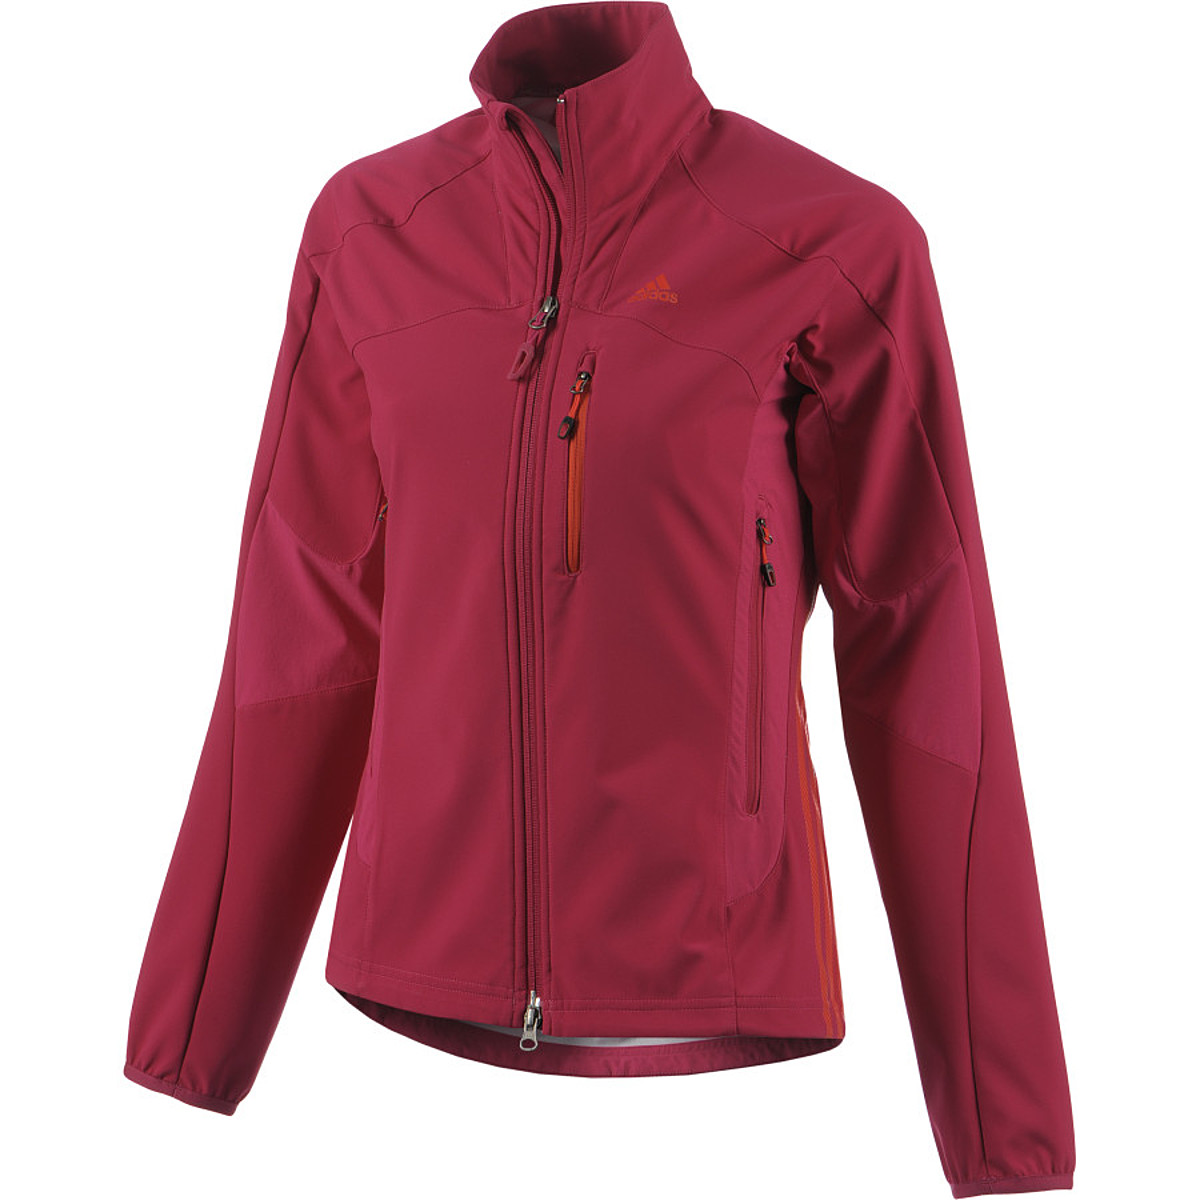 Adidas Terrex Swift Softshell